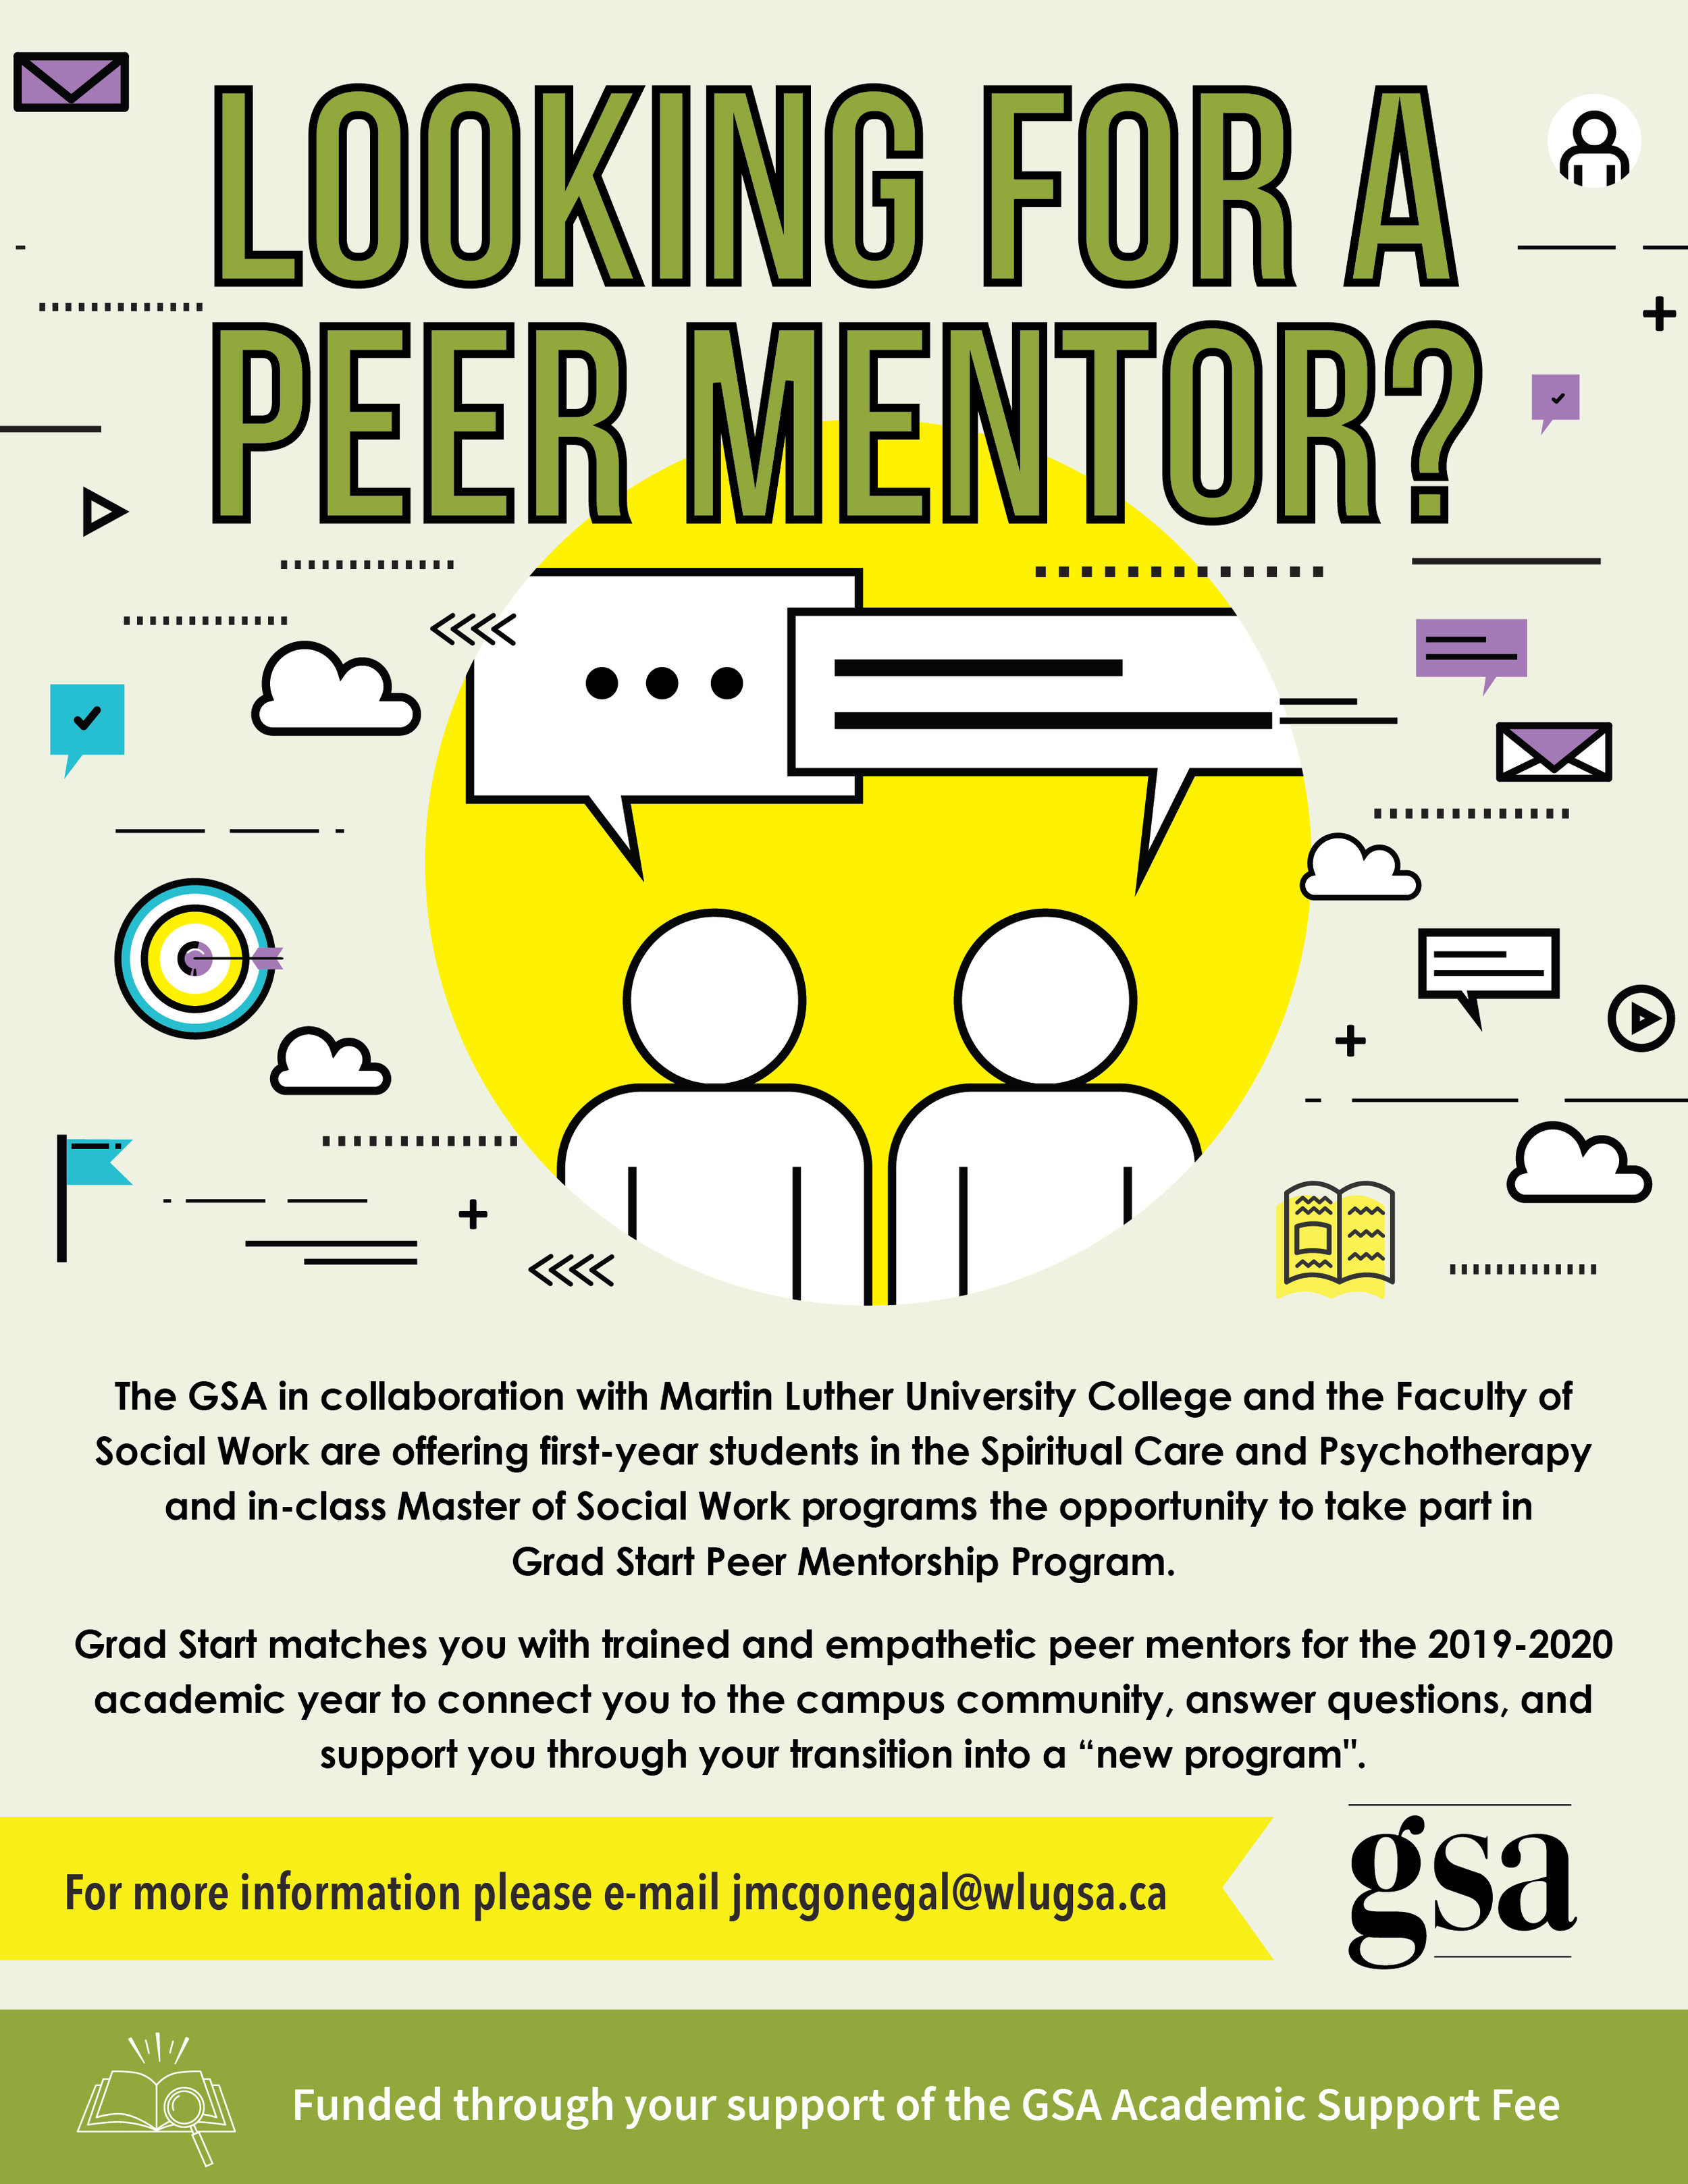 "The GSA in collaboration with Martin Luther University College and the Faculty of Social Work are offering first-year students in the Spiritual Care and Psychotherapy and in-class Master of Social Work programs the opportunity to take part in Grad Start Peer Mentorship Program.  Grad Start matches you with trained and empathetic peer mentors for the 2019-2020 academic year to connect you to the campus community, answer questions, and support you through your transition into a ""new program"".  For more information please e-mail jmcgonegal@wlugsa.ca  Funded through your support of the GSA Adademic Support Fee."